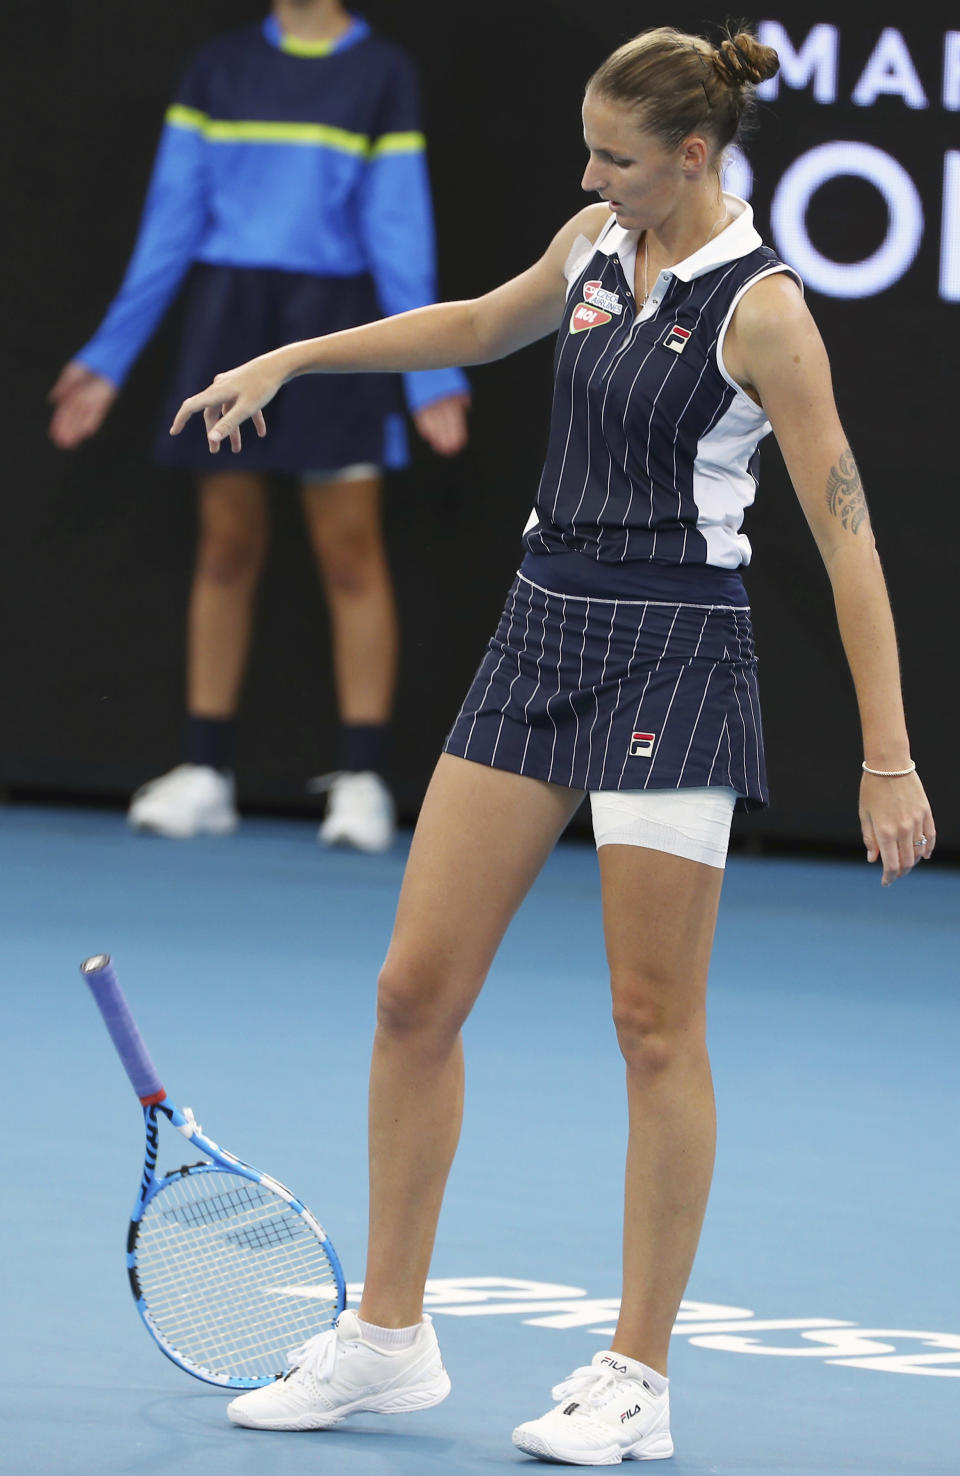 Karolina Pliskova of the Czech Republic throws her racket to the ground after she missed a shot during her final match against Madison Keys of the United States at the Brisbane International tennis tournament in Brisbane, Australia, Sunday, Jan. 12, 2020. (AP Photo/Tertius Pickard)